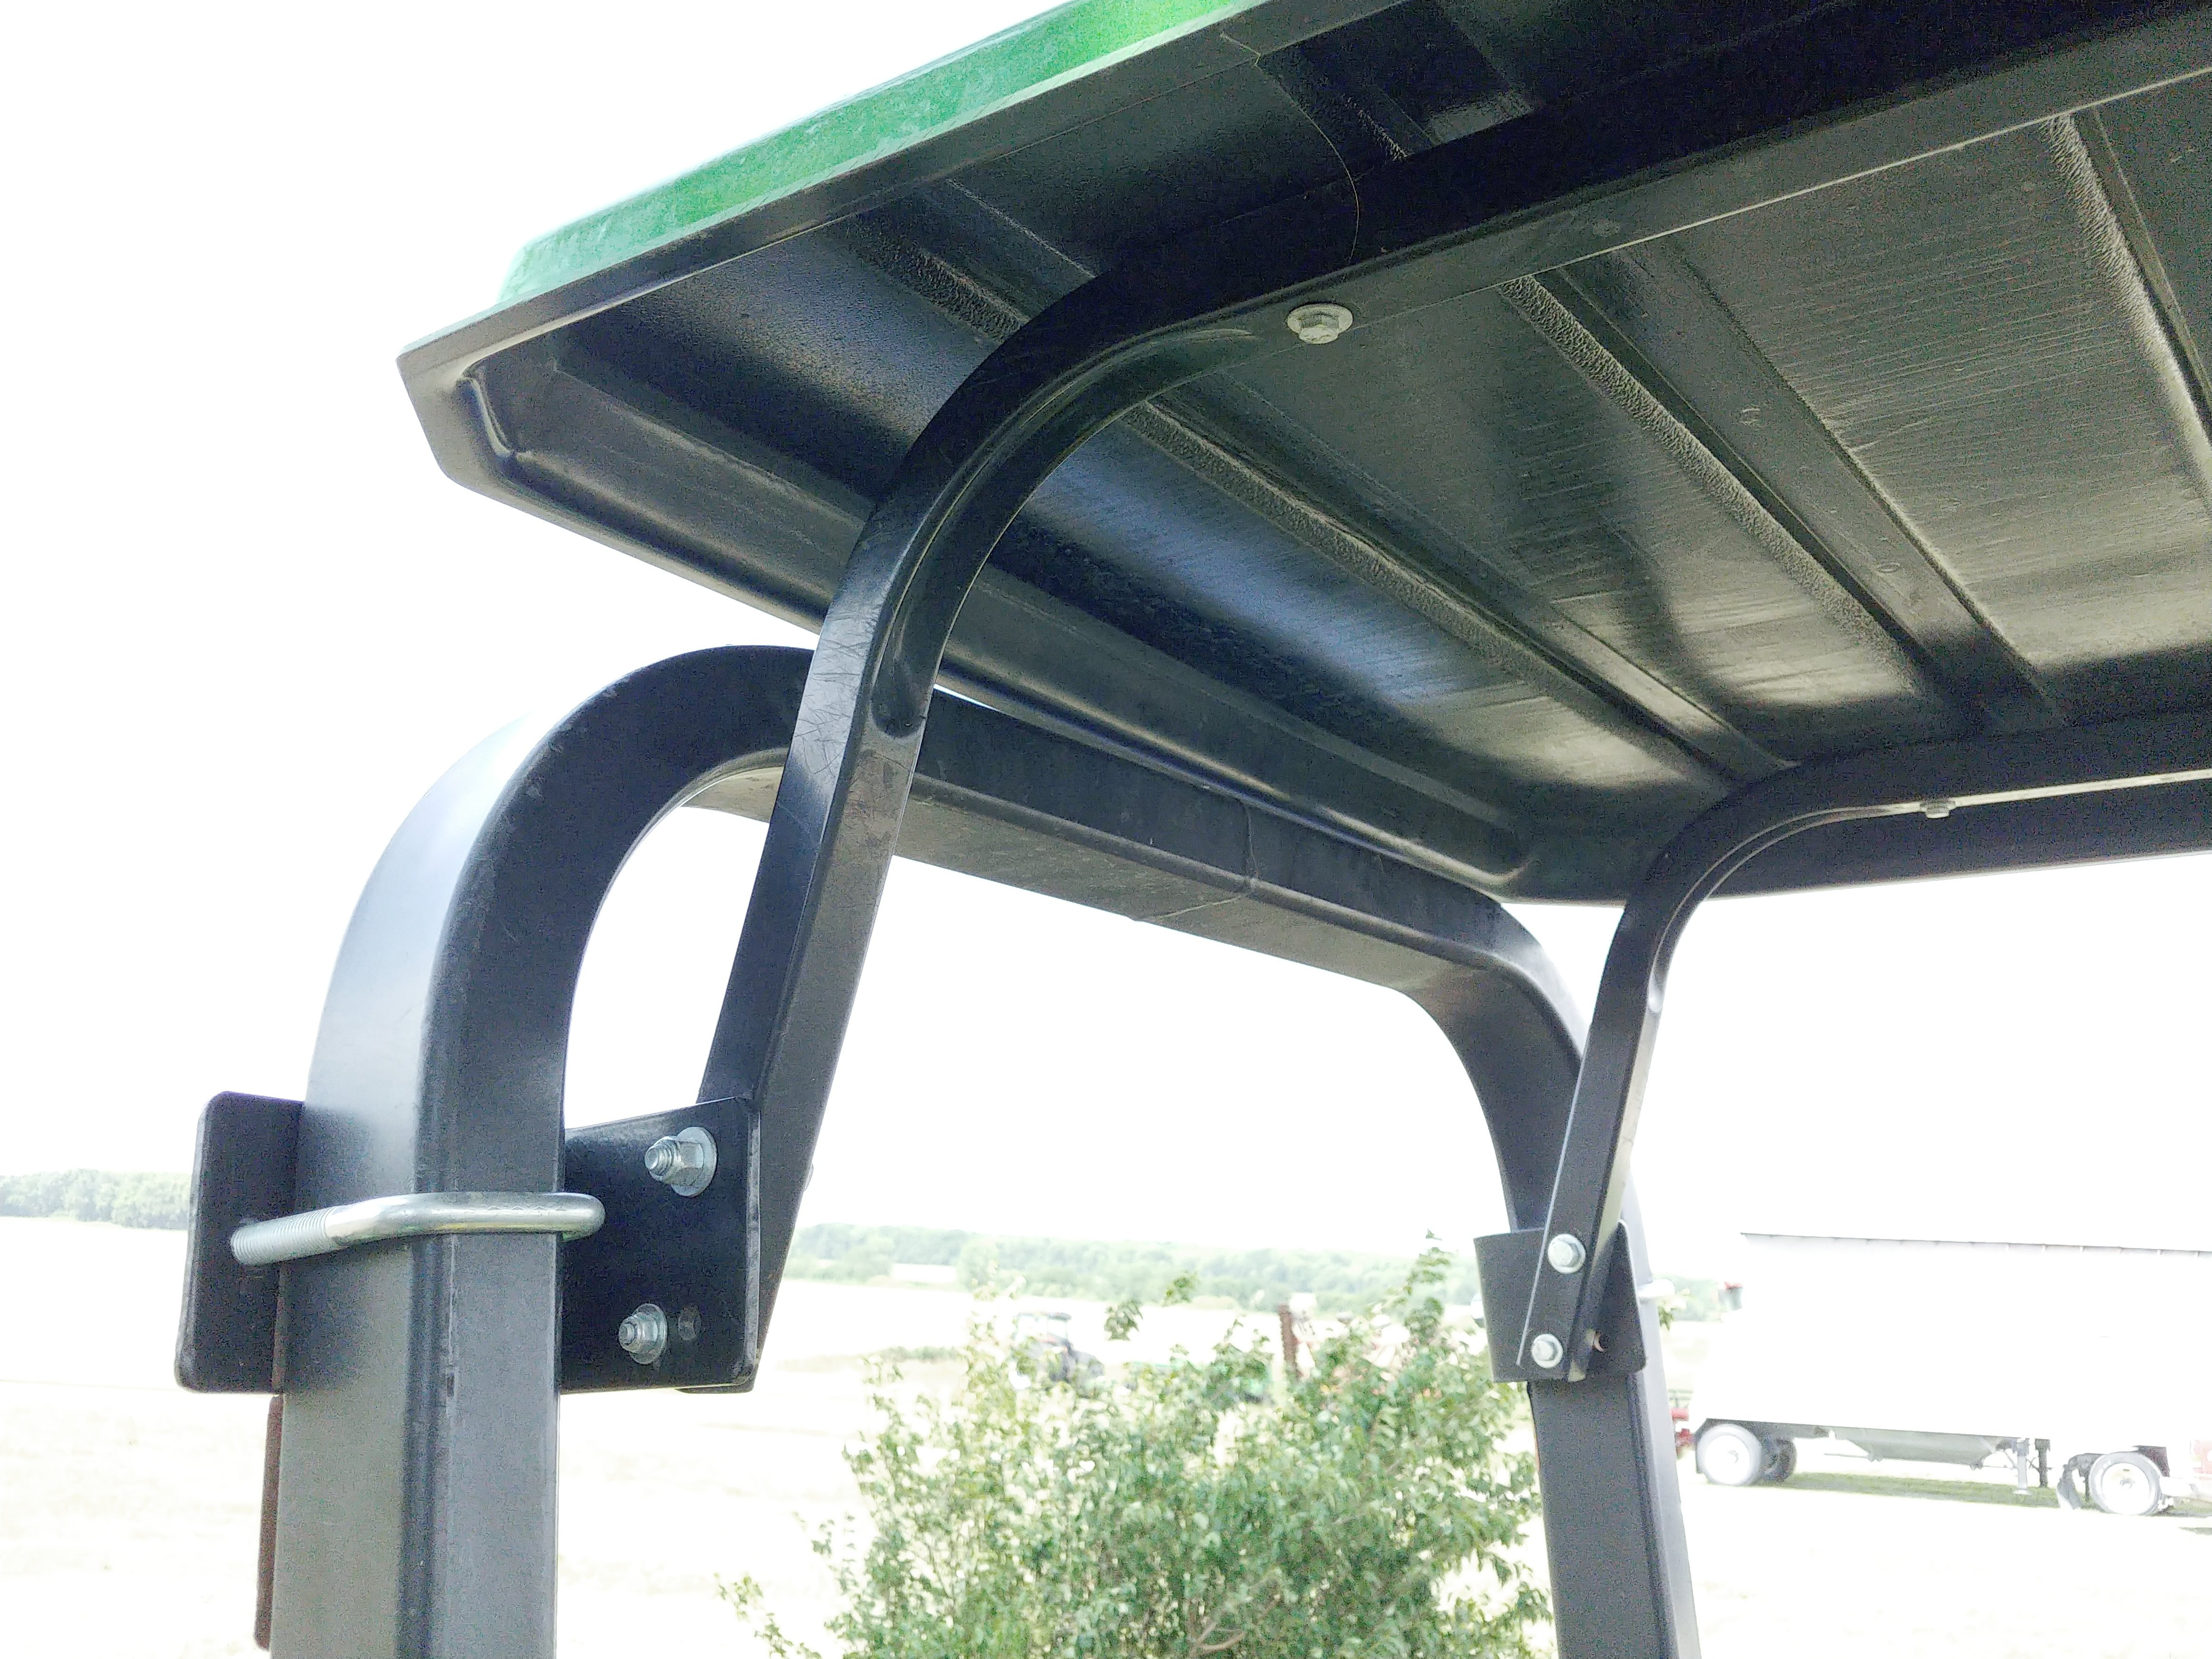 Side view of installed canopy.